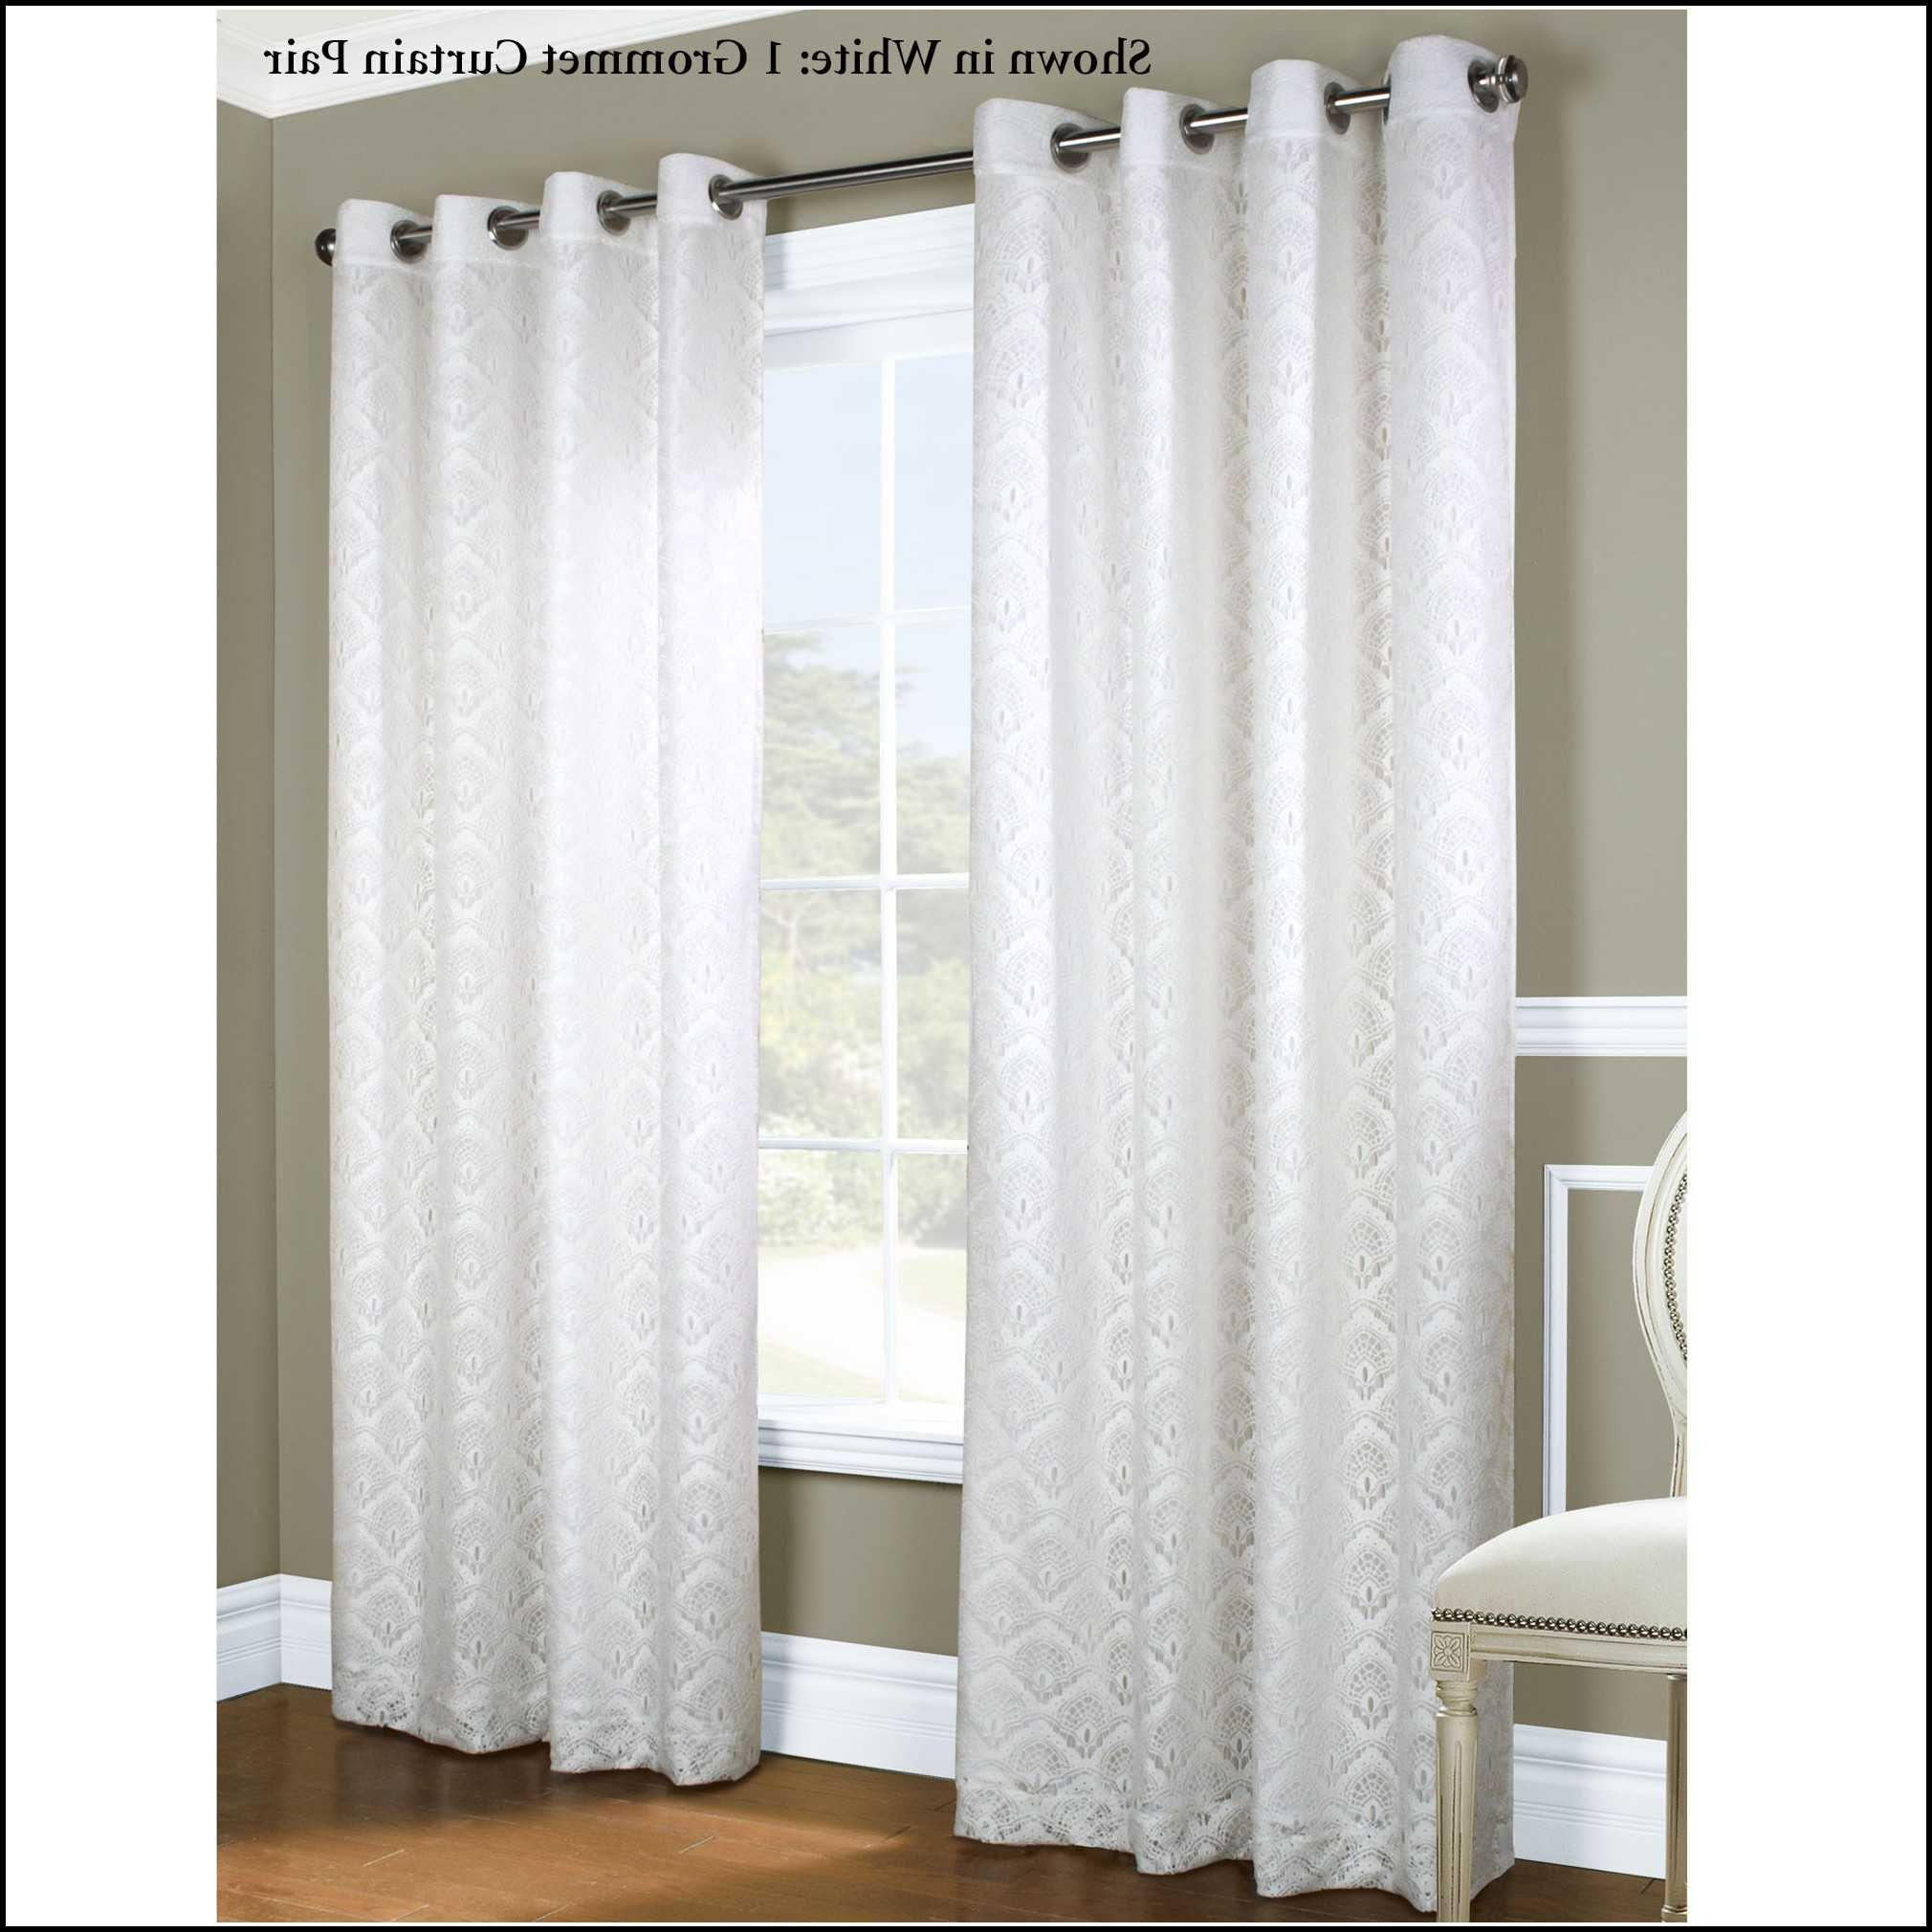 with hemming included jungle cotton bedroom two pack wide pin contains a heading weave lengths and patterned in interior curtain tape cased green